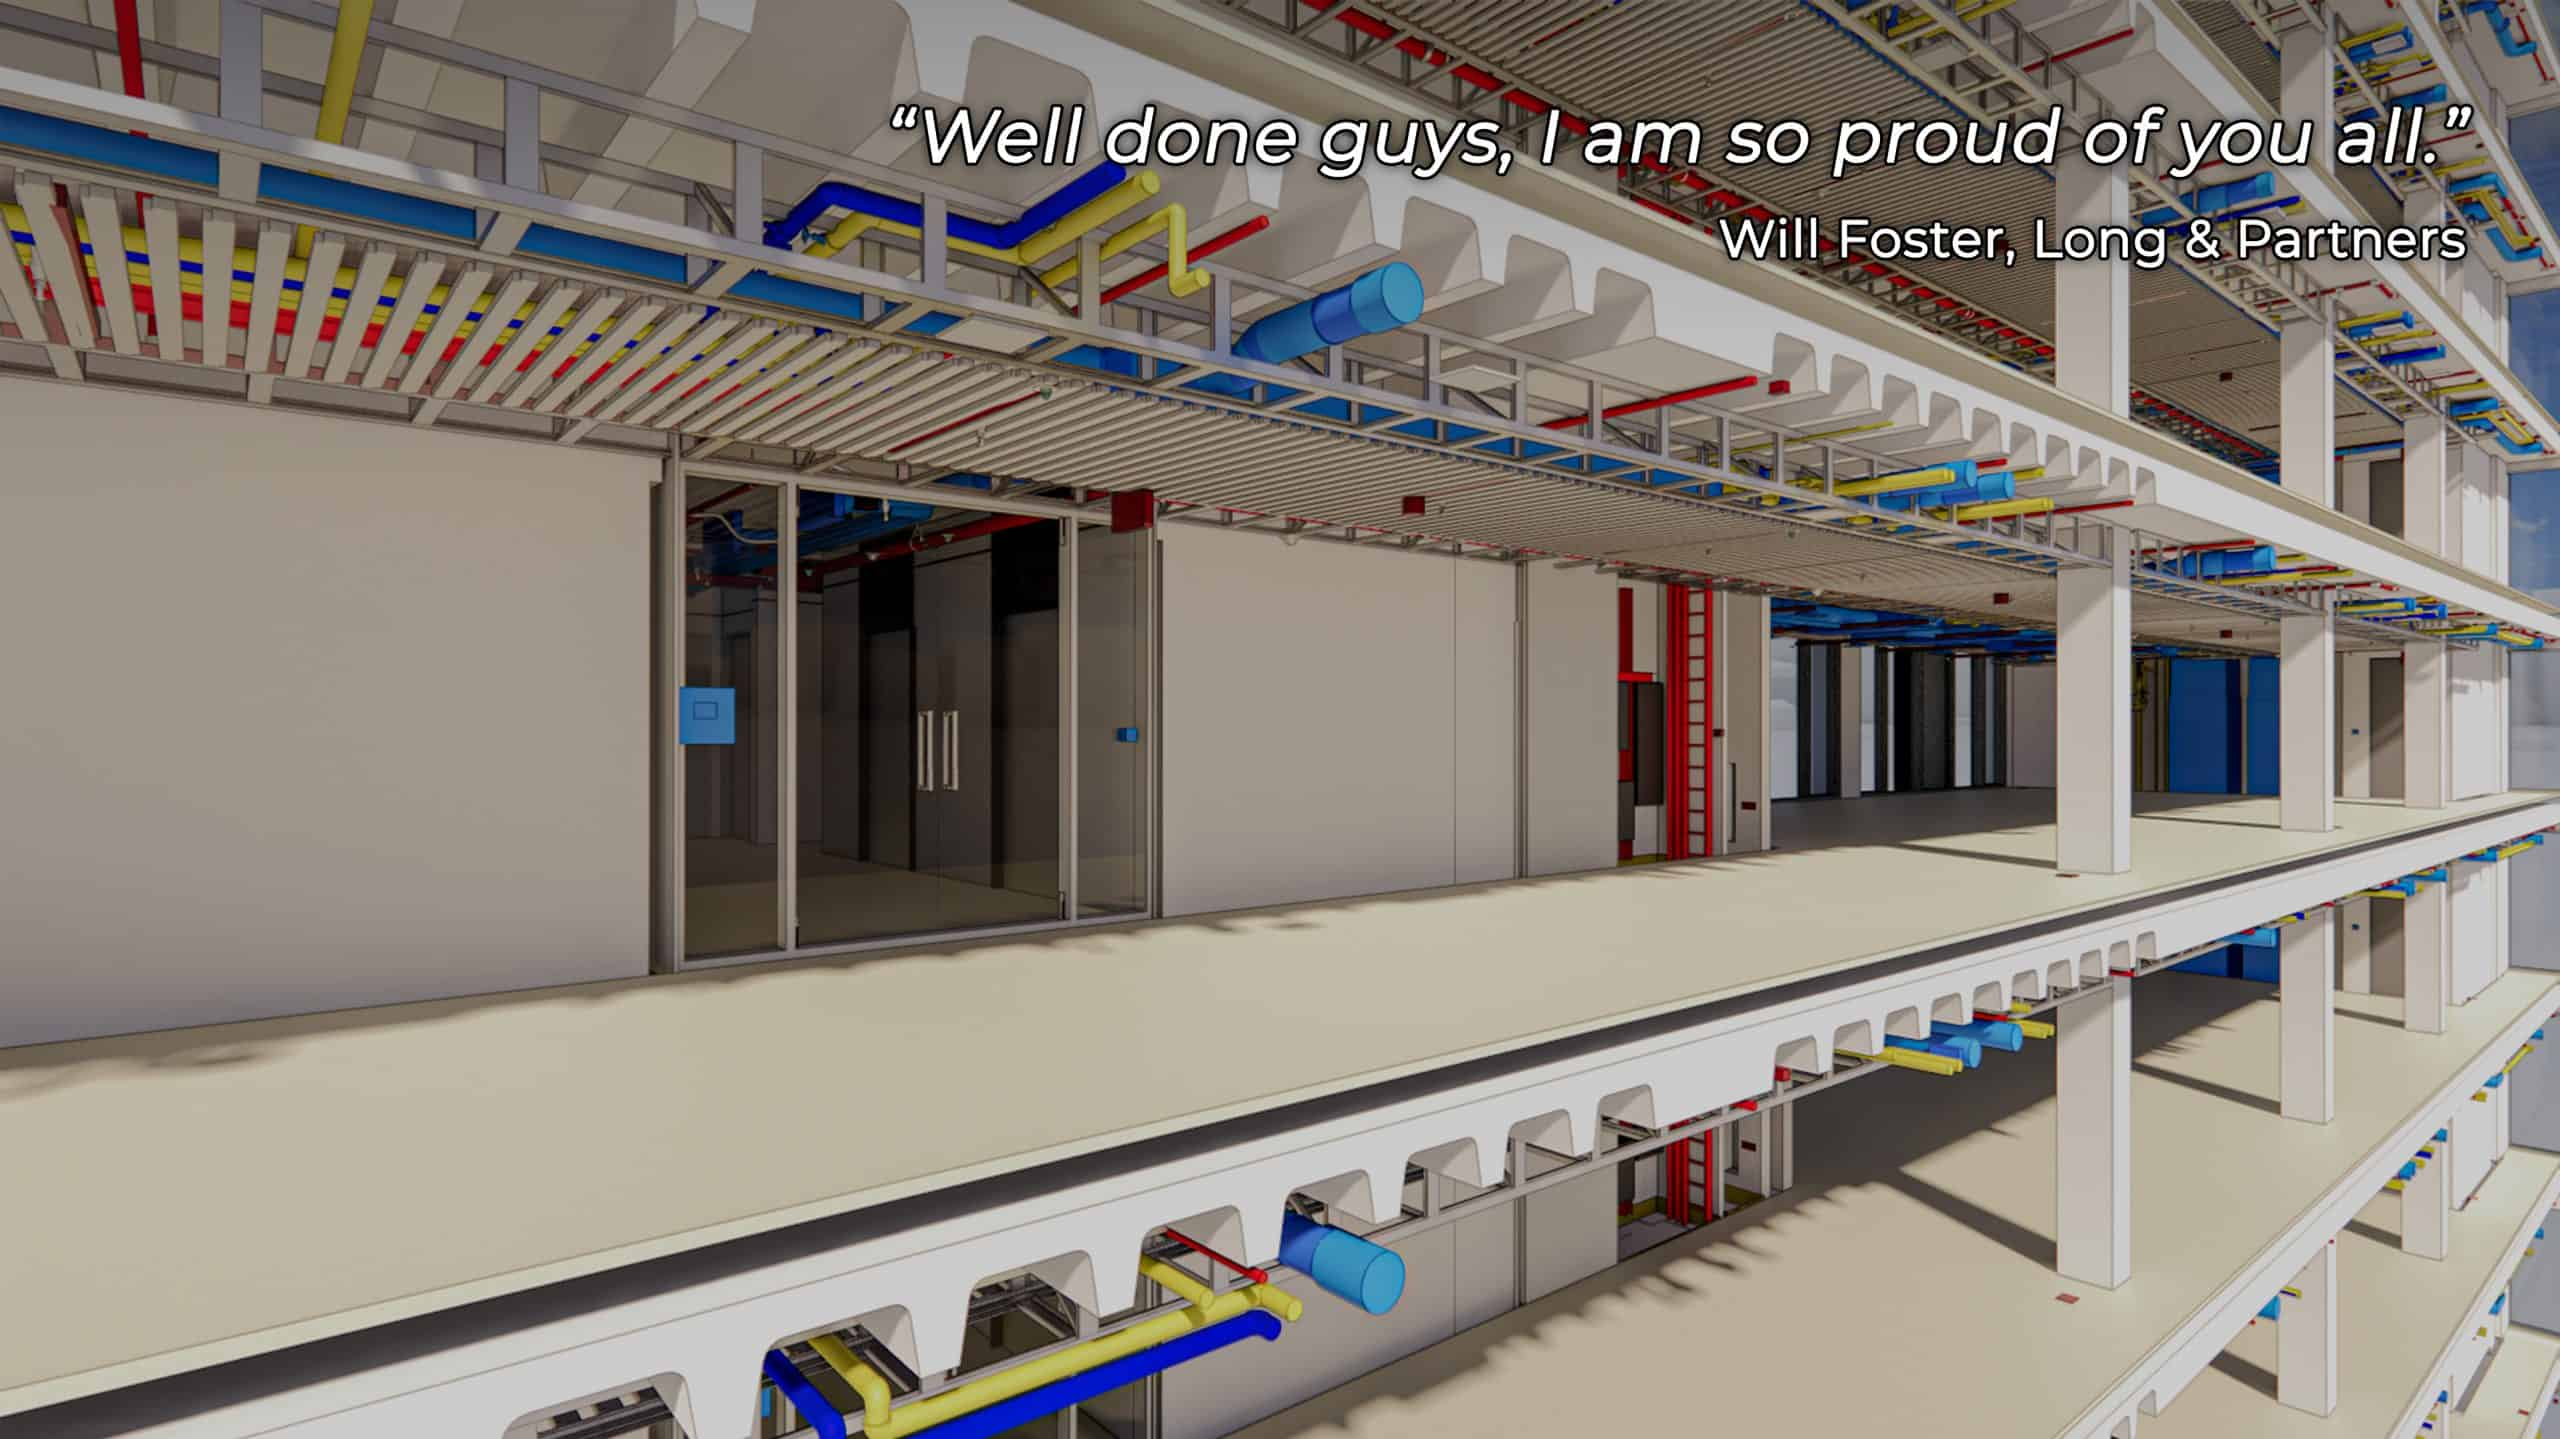 """BIM model with testimonial: """"Well done guys, I am so proud of you all."""" Will Foster, Long & Partners"""